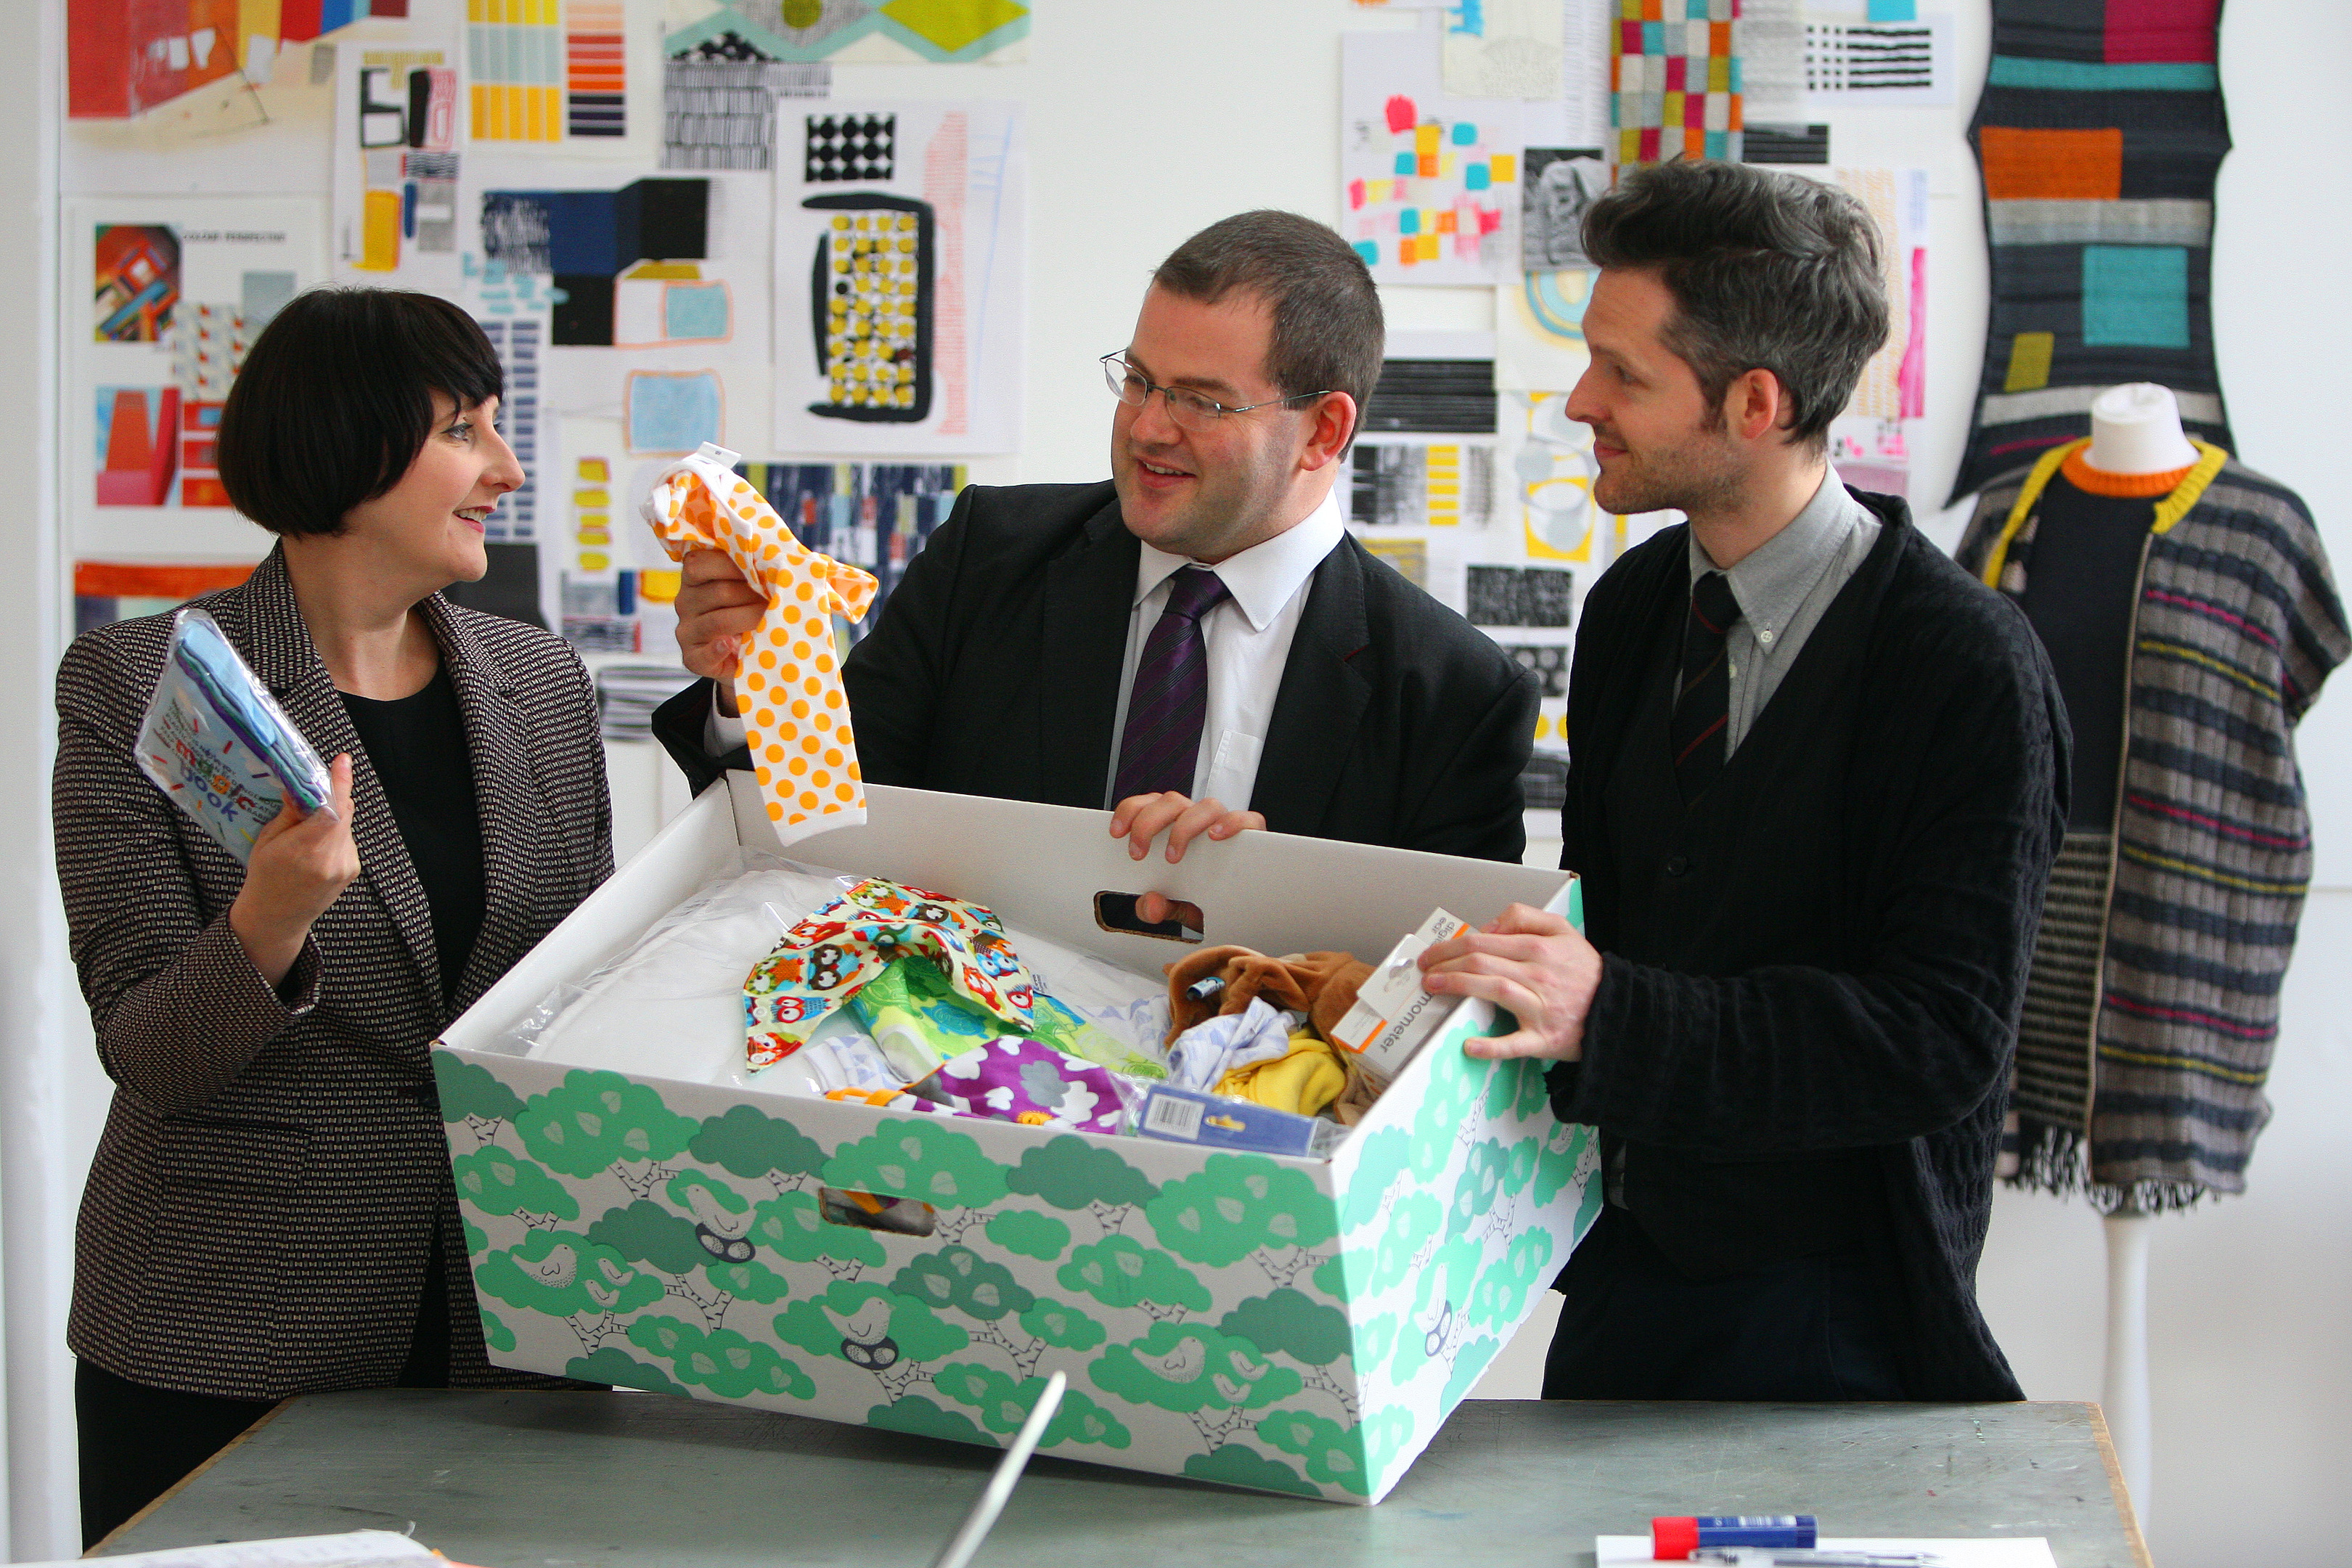 Mark McDonald MSP discusses the content of the boxes with Sarah Saunders and Scott Jarvie